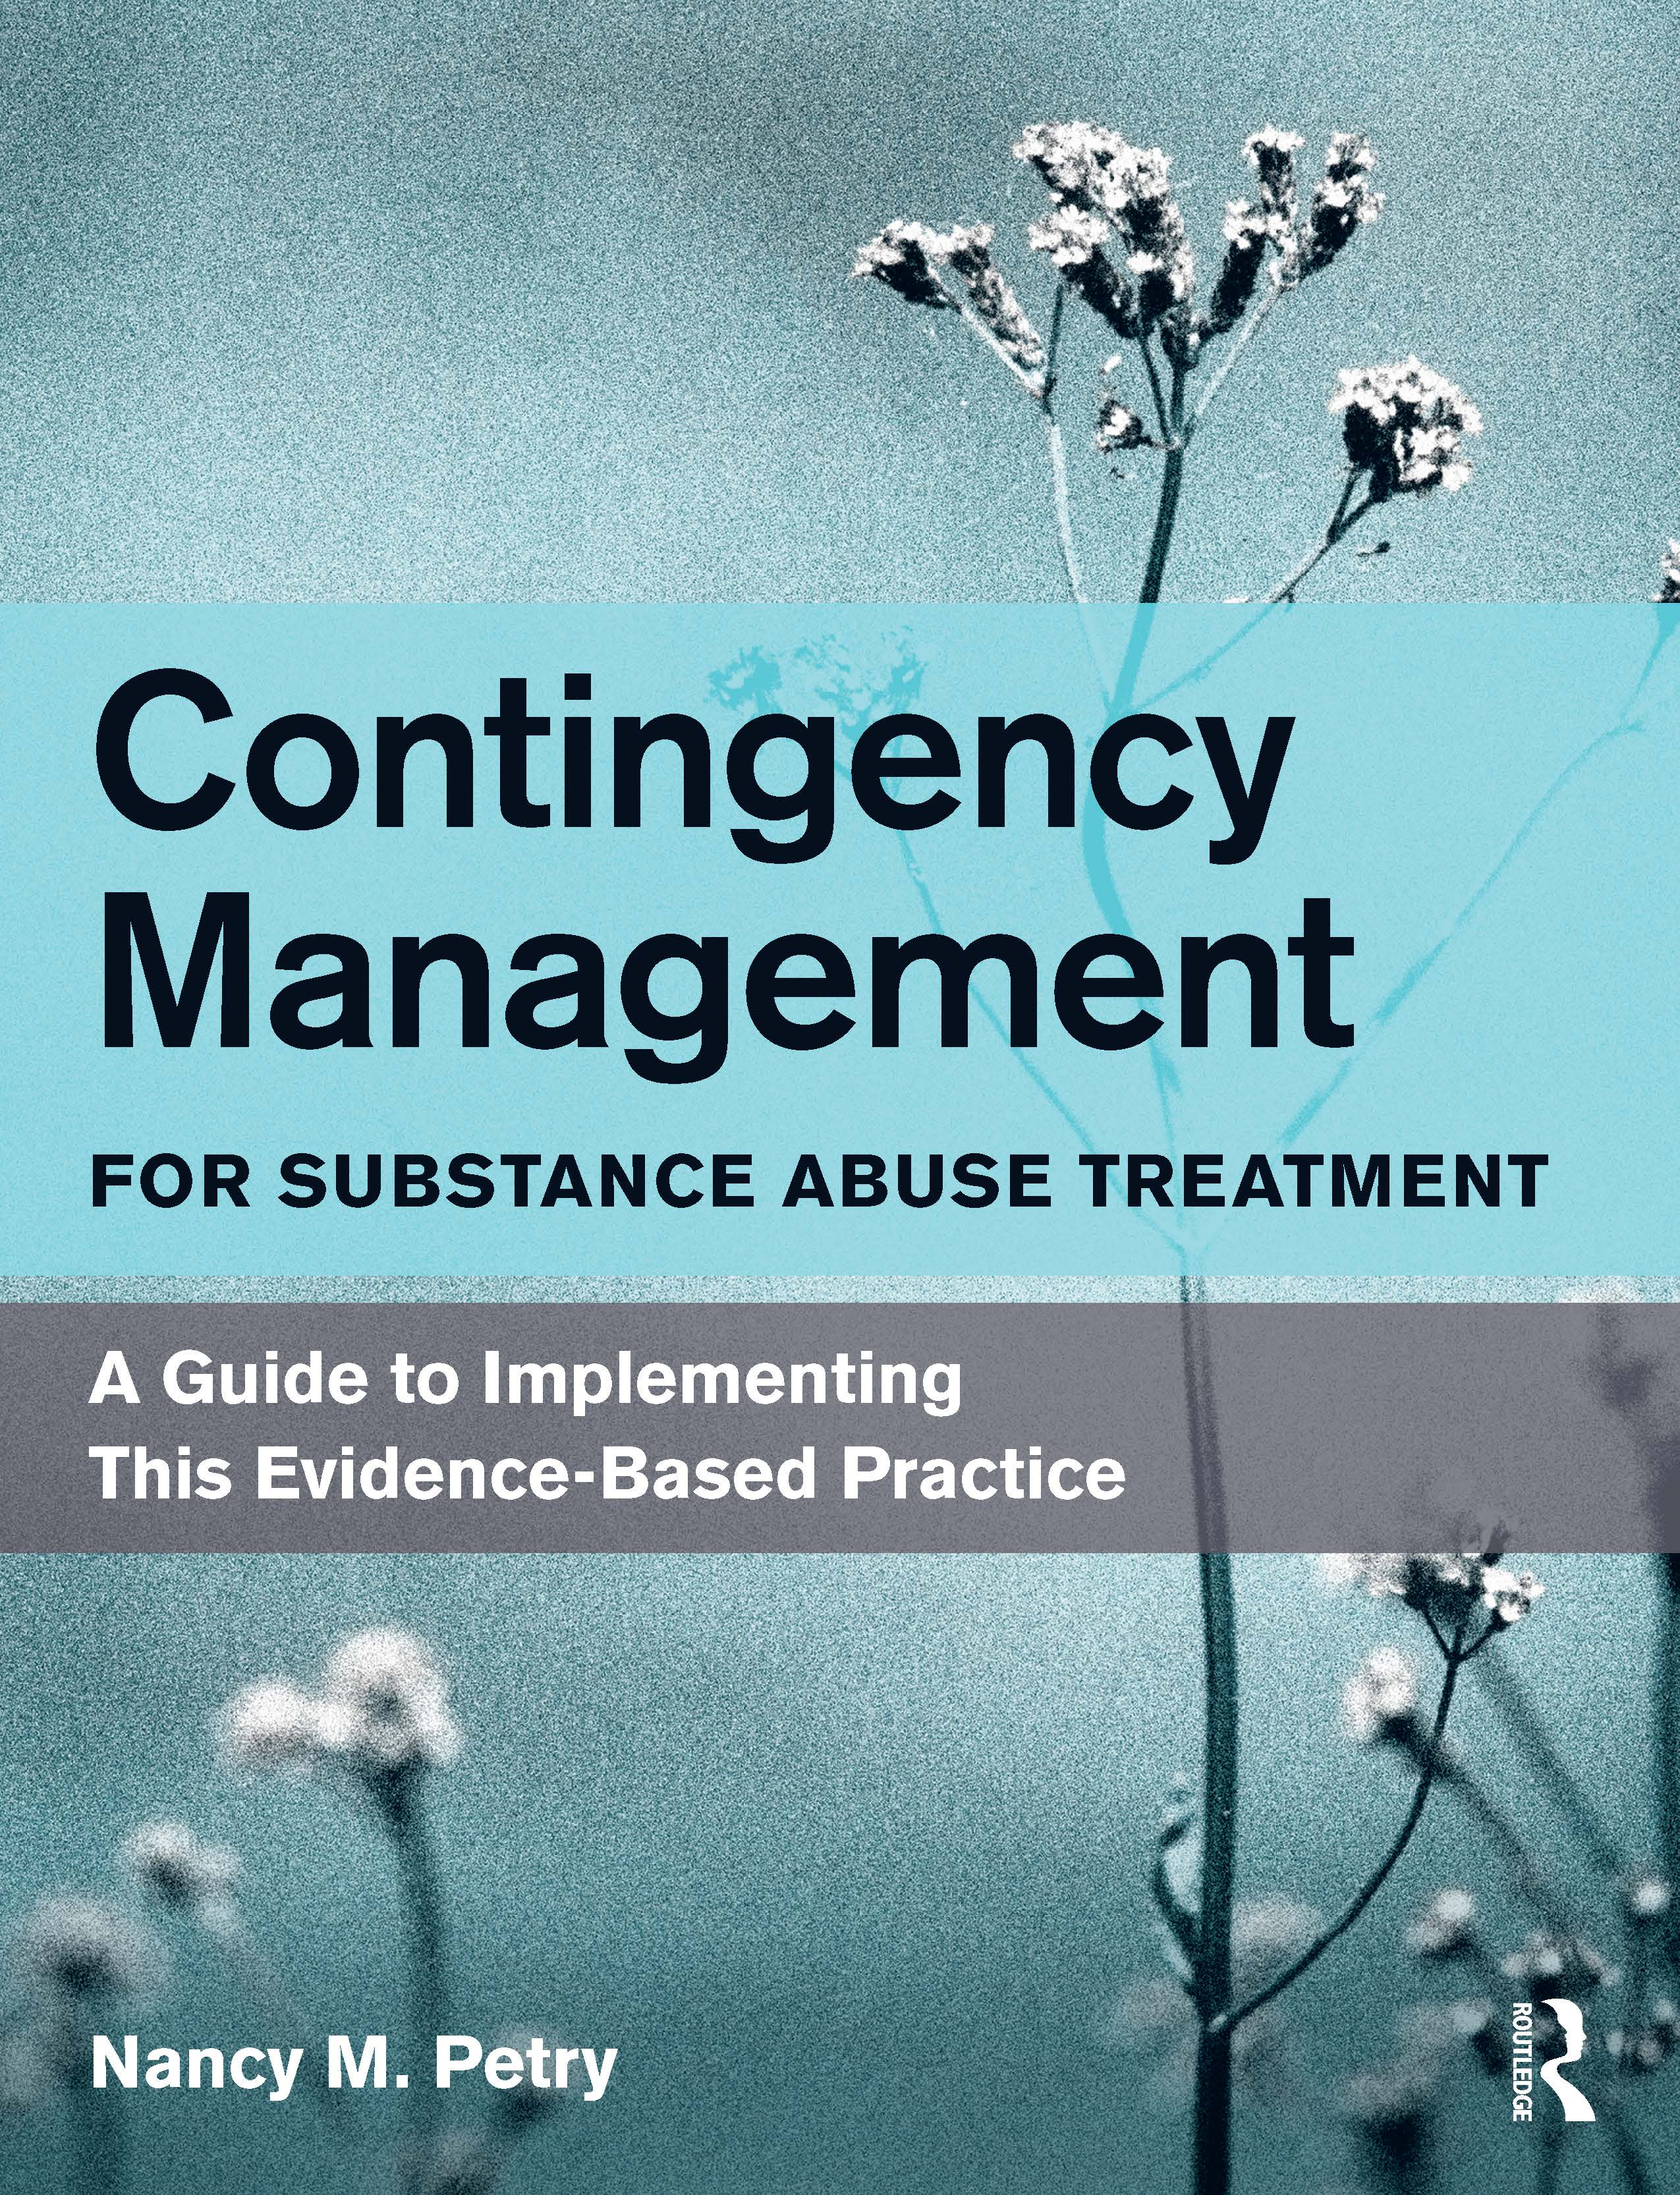 Contingency Management for Substance Abuse Treatment: A Guide to Implementing This Evidence-Based Practice (Paperback) book cover